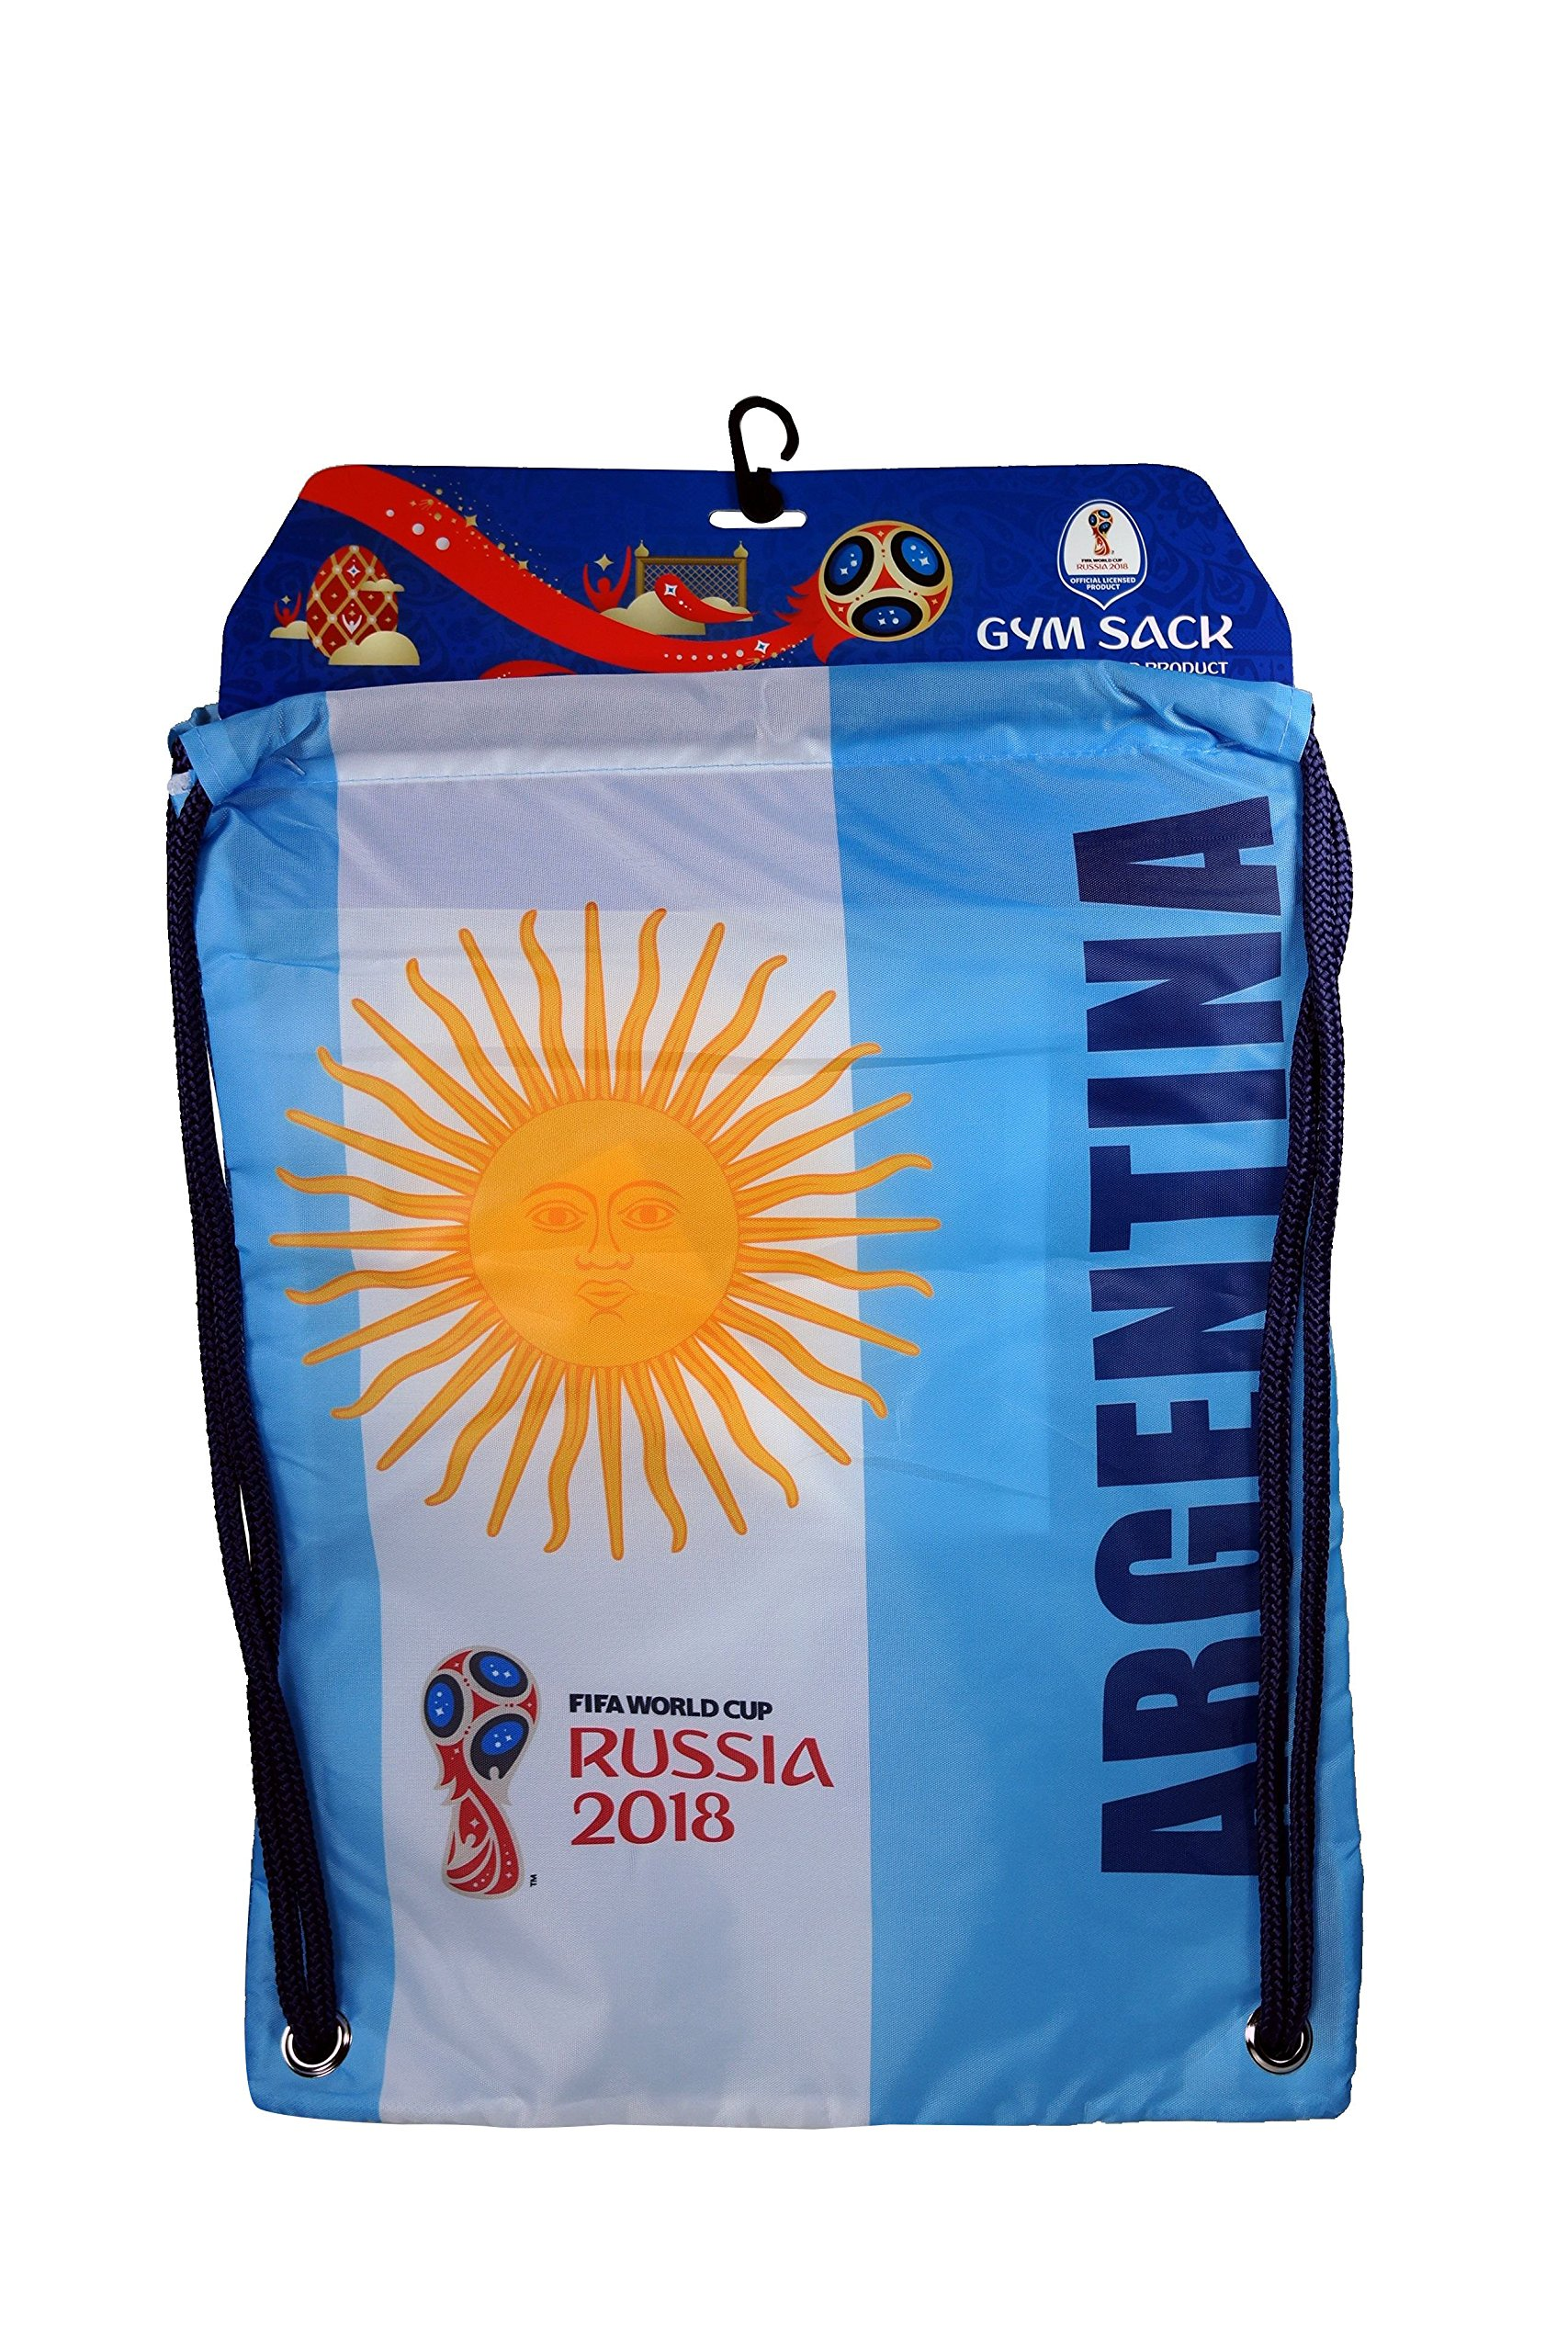 FIFA Official Russia 2018 World Cup Official Licensed Cinch Bag 05-3